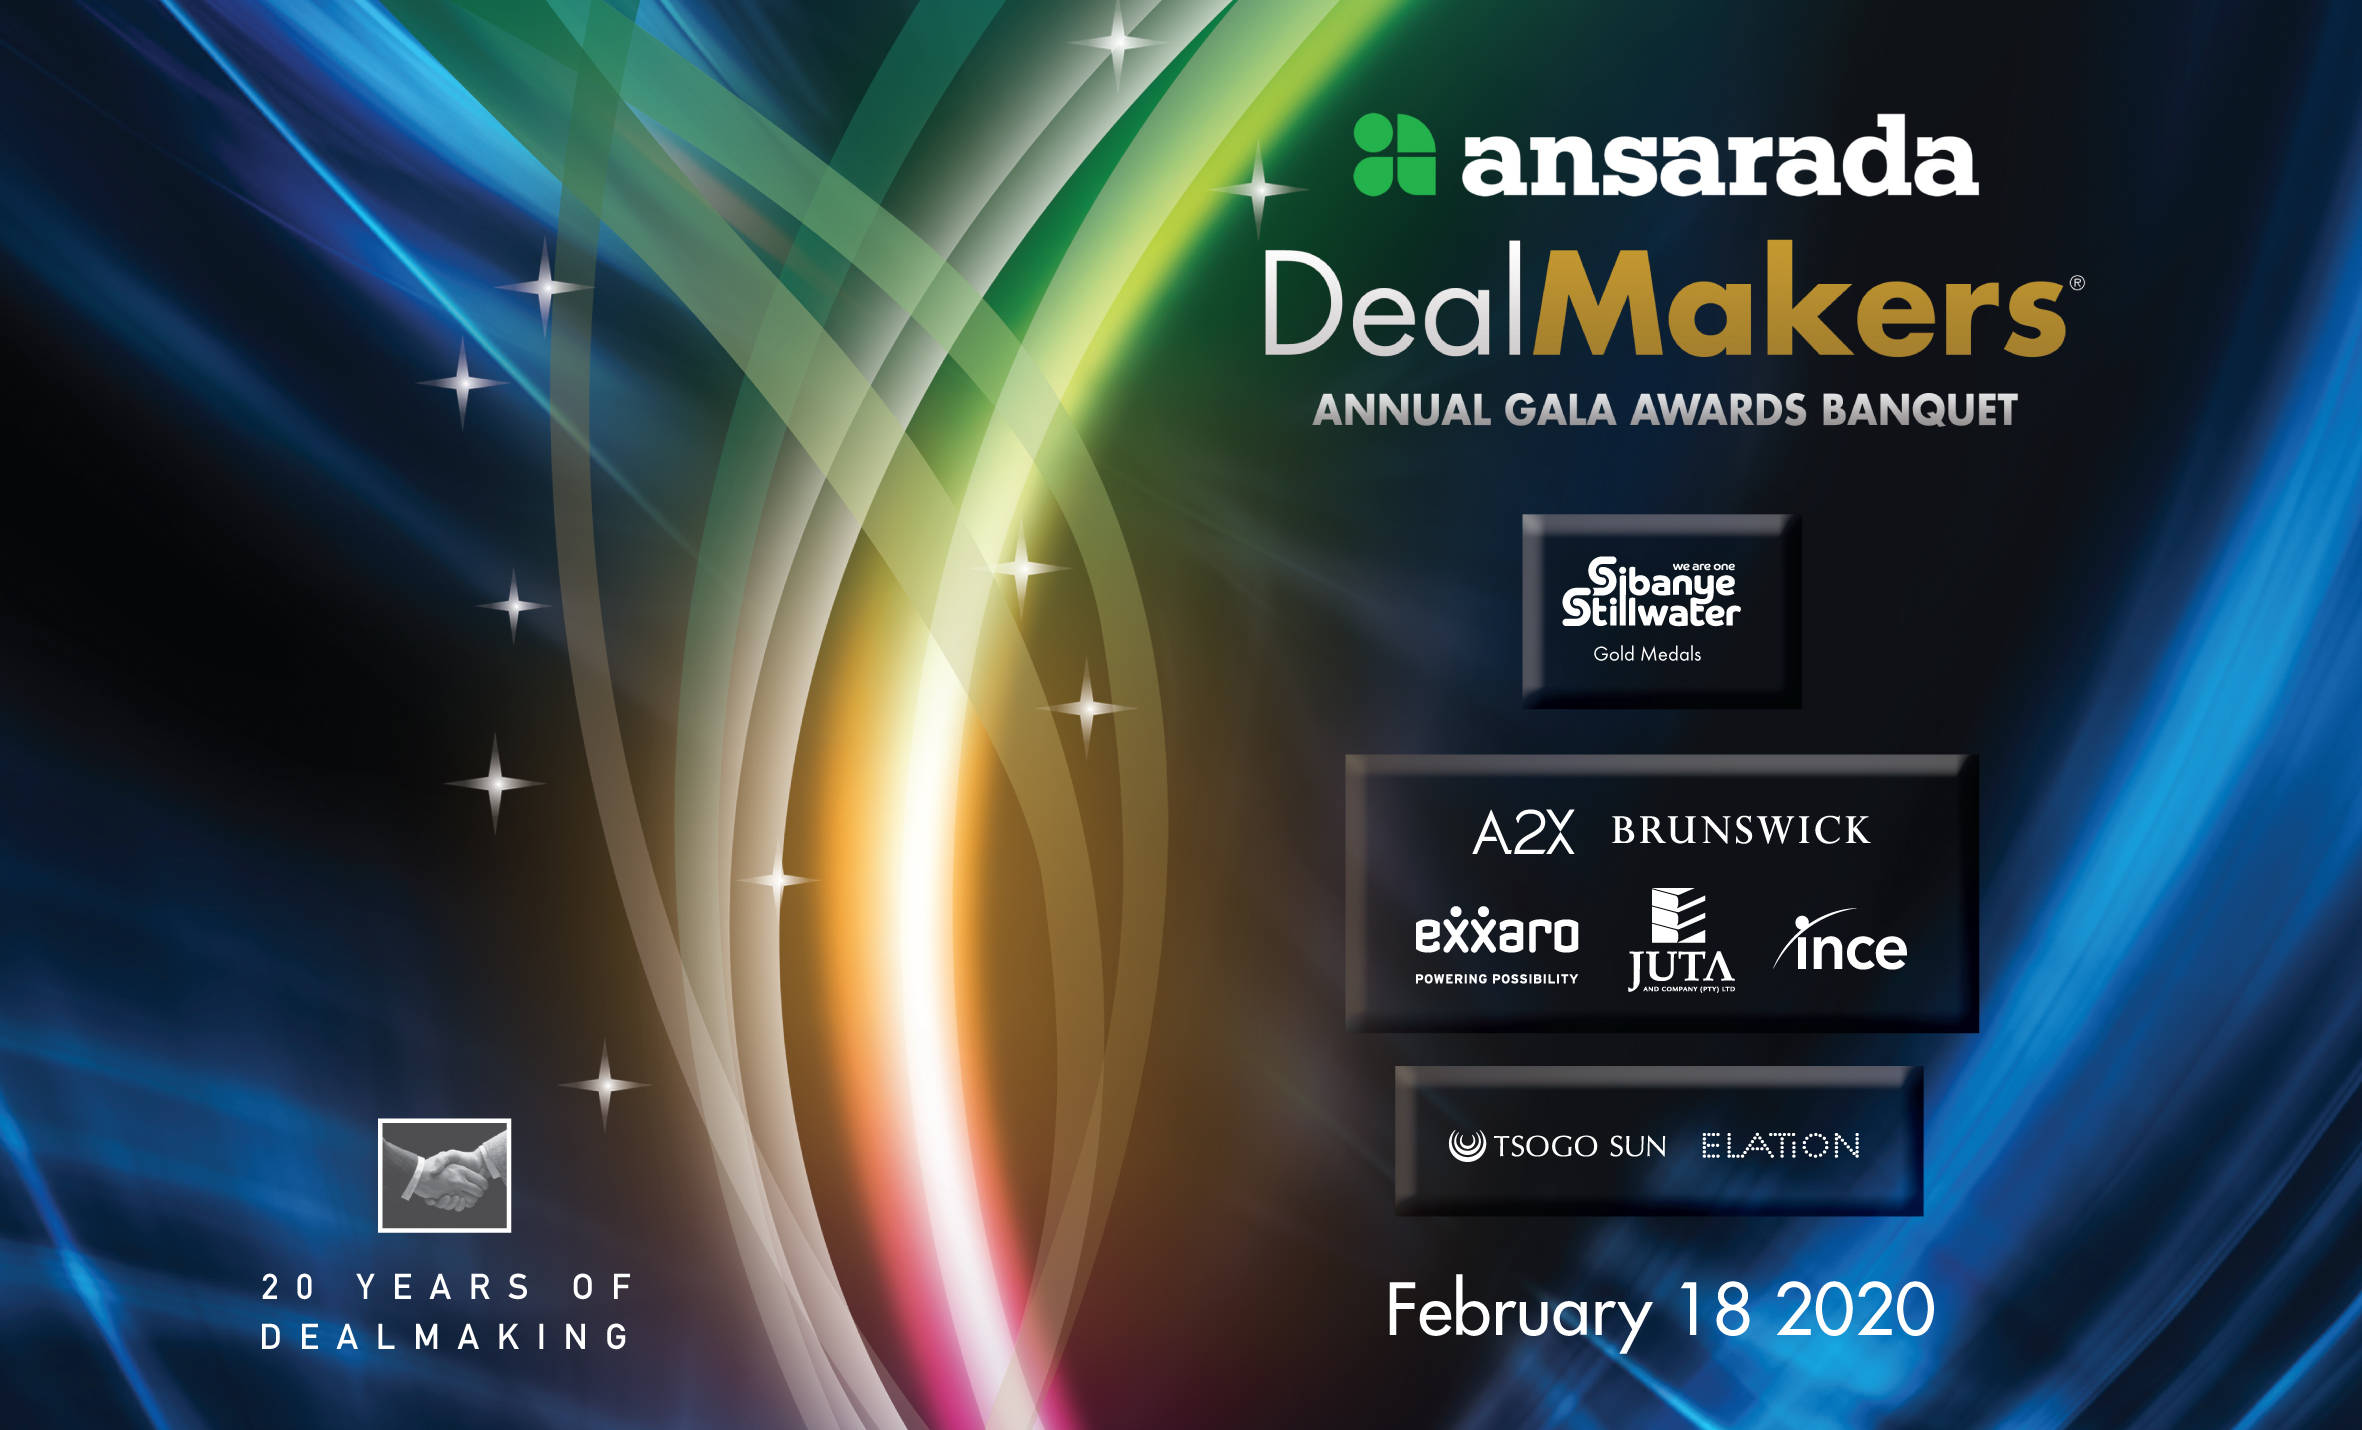 DealMakers Gala Awards